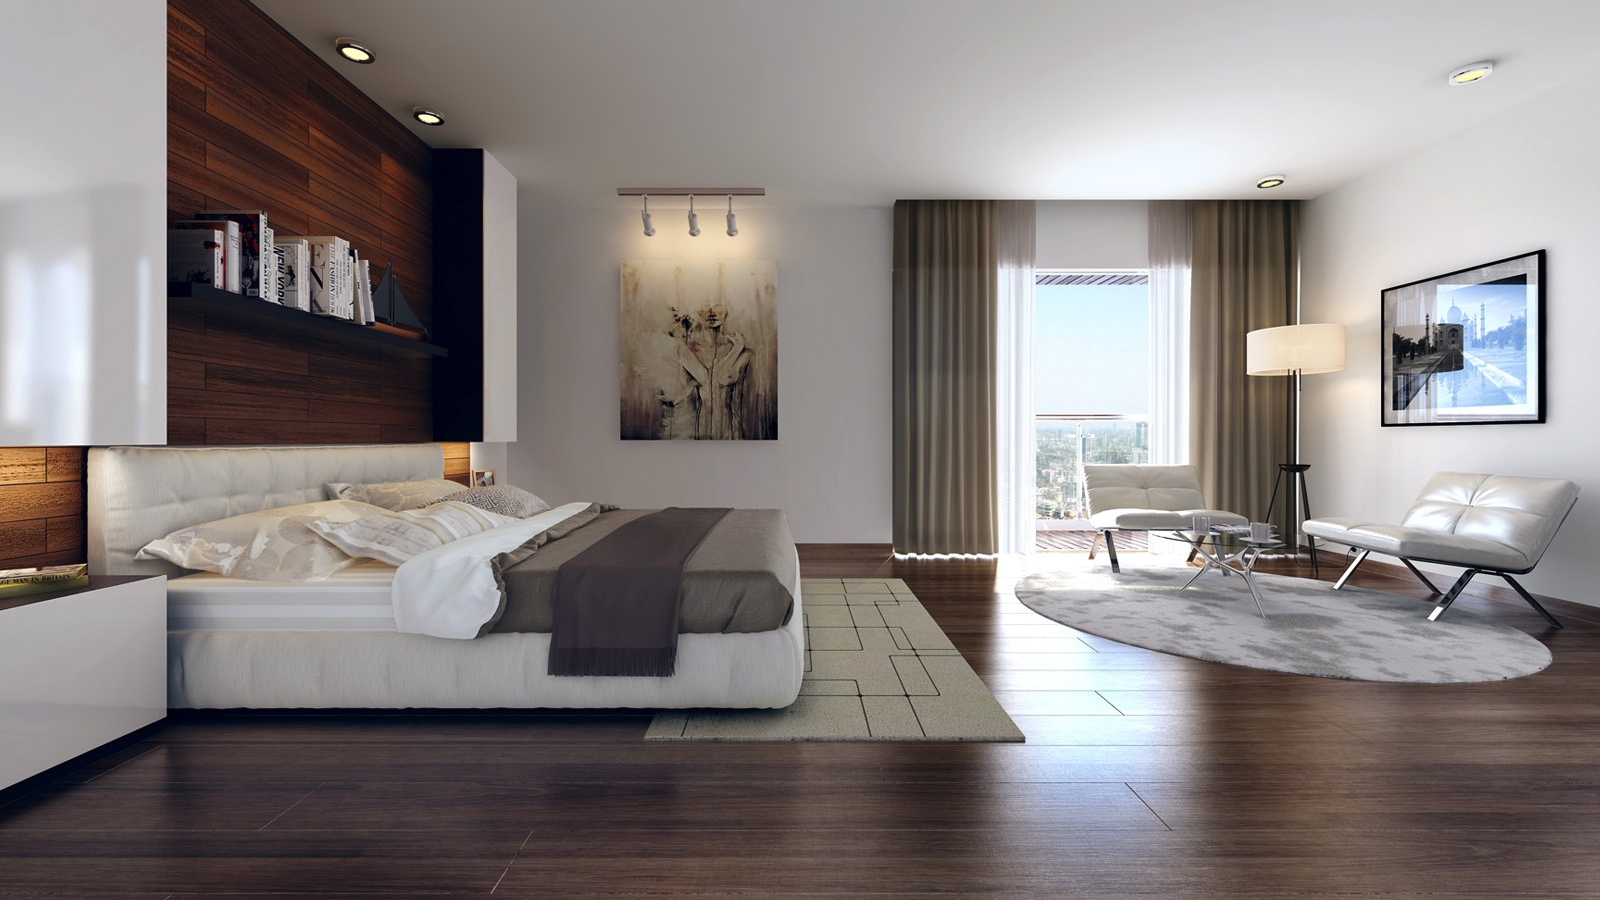 Modern bedroom design ideas for rooms of any size for Bedroom flooring